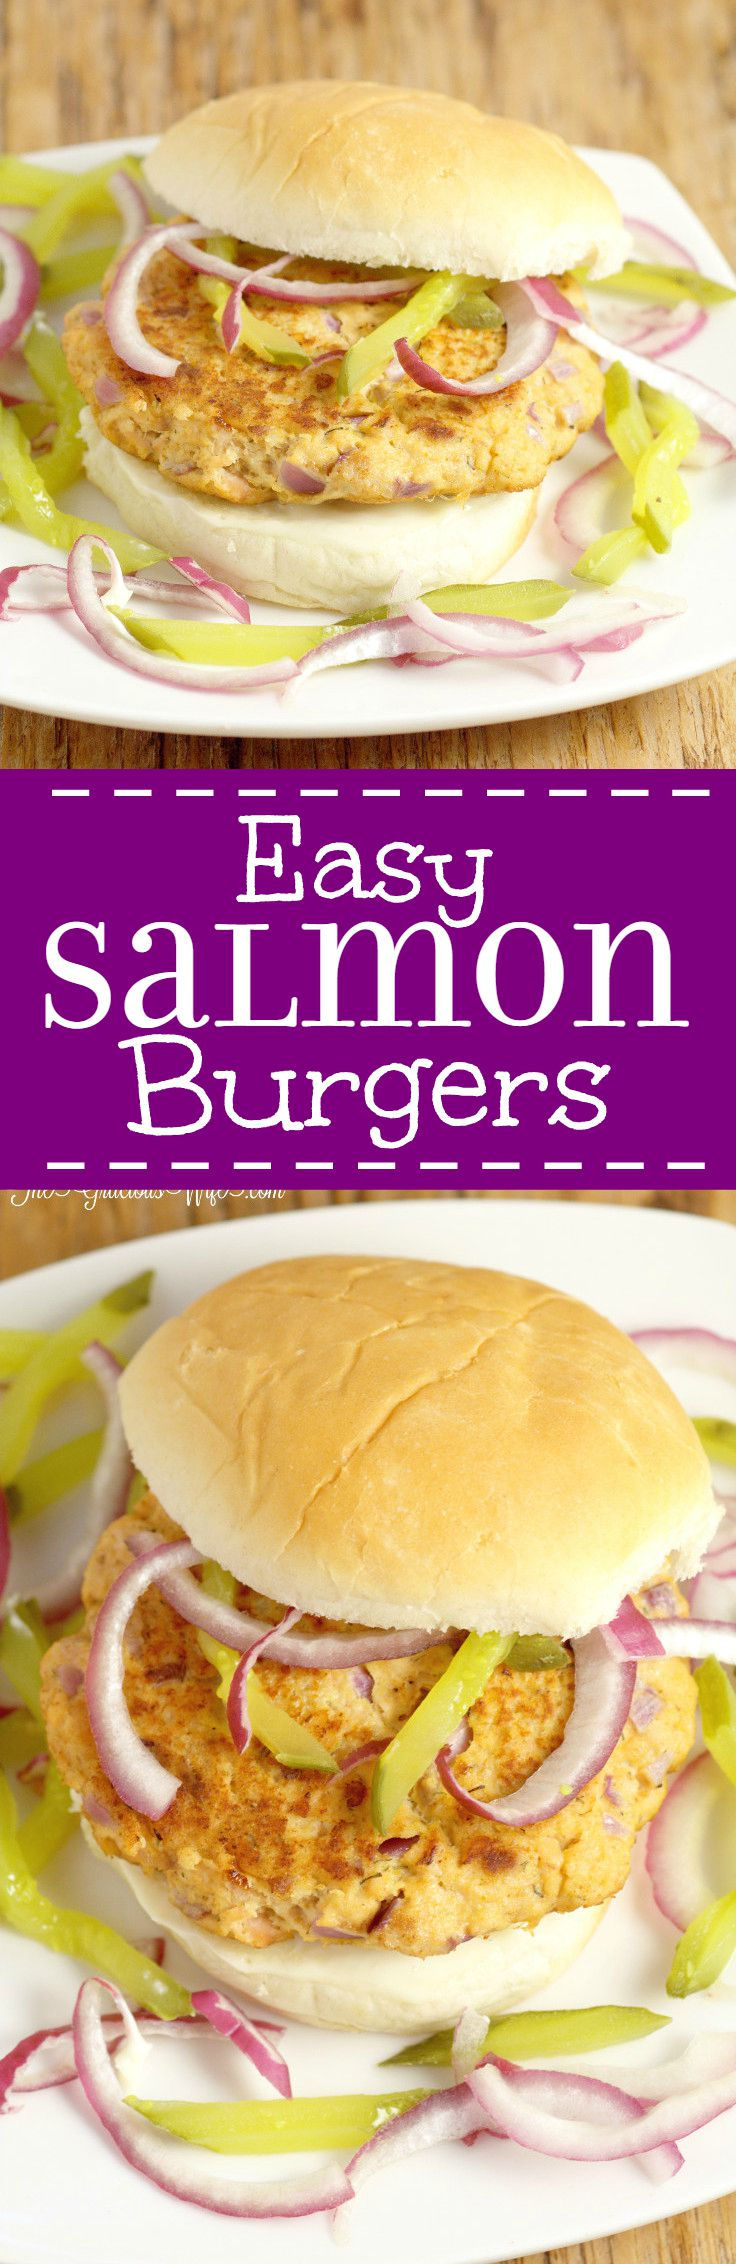 This easy Salmon Burgers recipe is a delicious burger made with salmon fillets and hints of lemon, dill, and mustard, topped with a simple pickle and red onion relish. A quick and easy healthy dinner recipe for the whole family. This relish was so good I couldn't get enough of it!